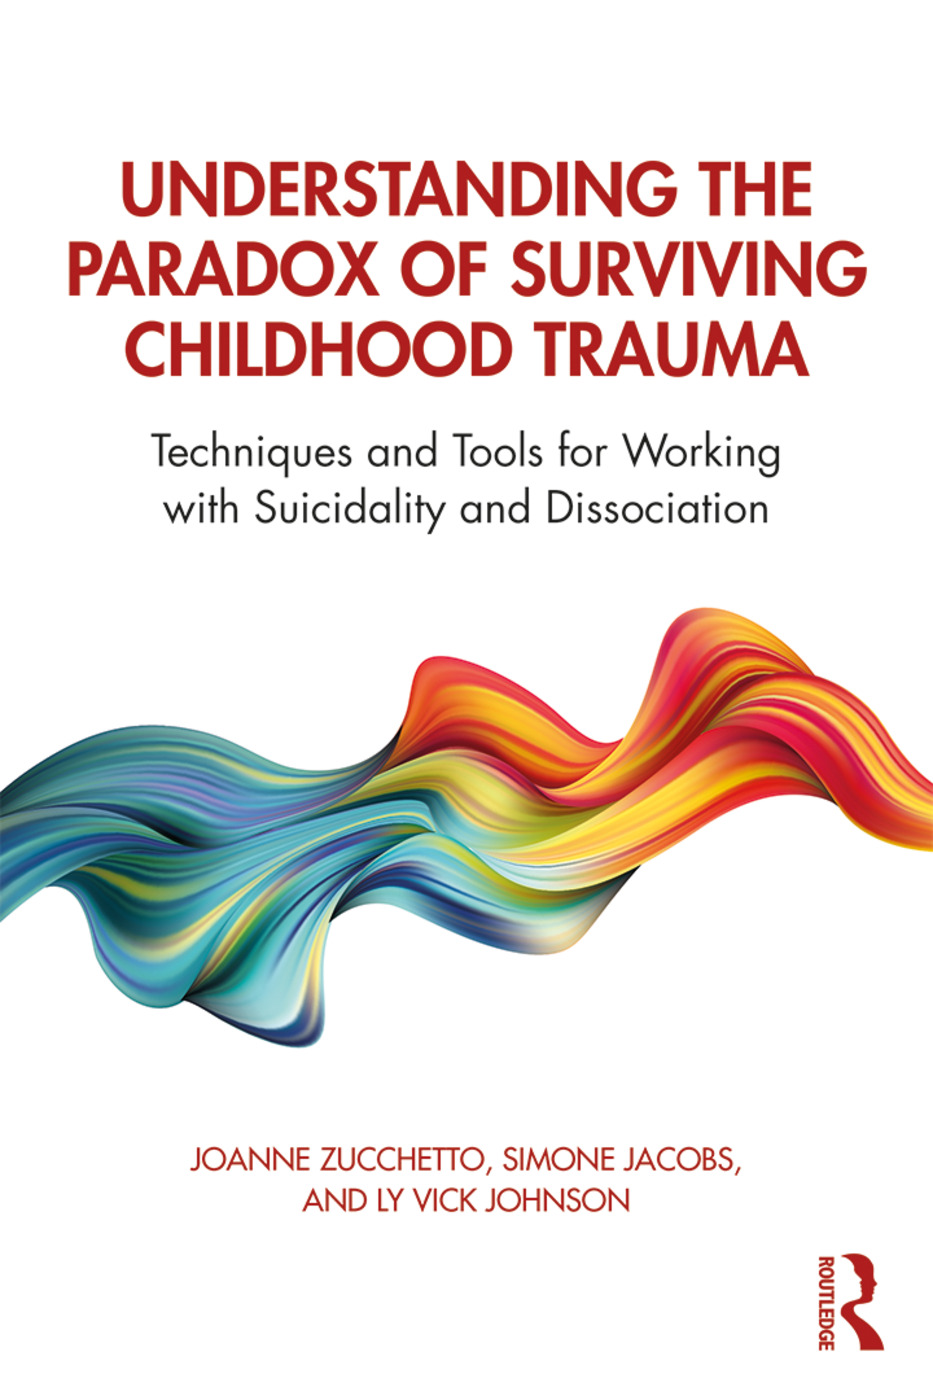 Understanding the Paradox of Surviving Childhood Trauma: Techniques and Tools for Working with Suicidality and Dissociation book cover